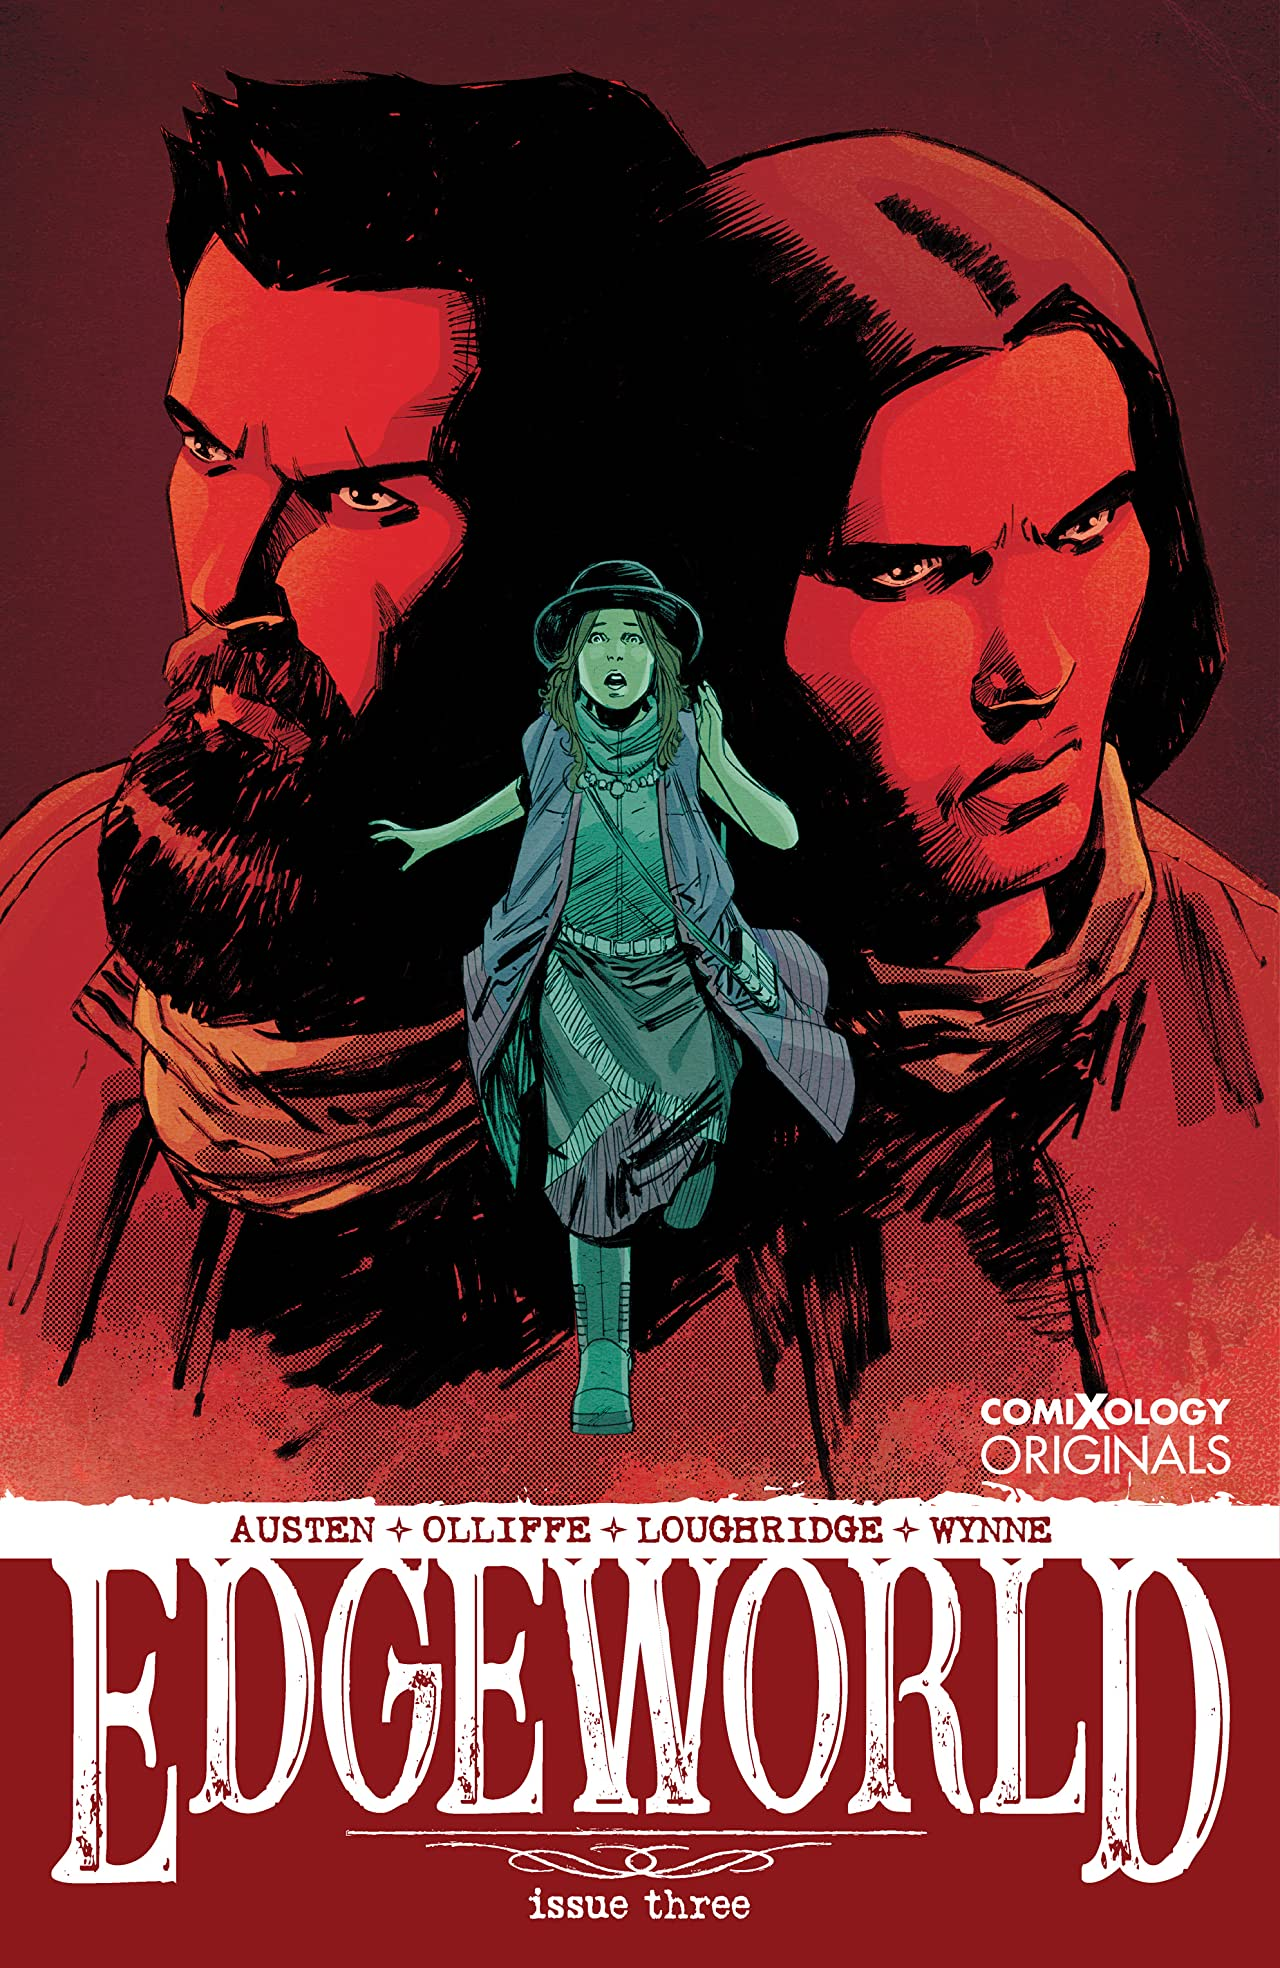 Edgeworld #3 (of 5): Bird in the Hand (comiXology Originals)